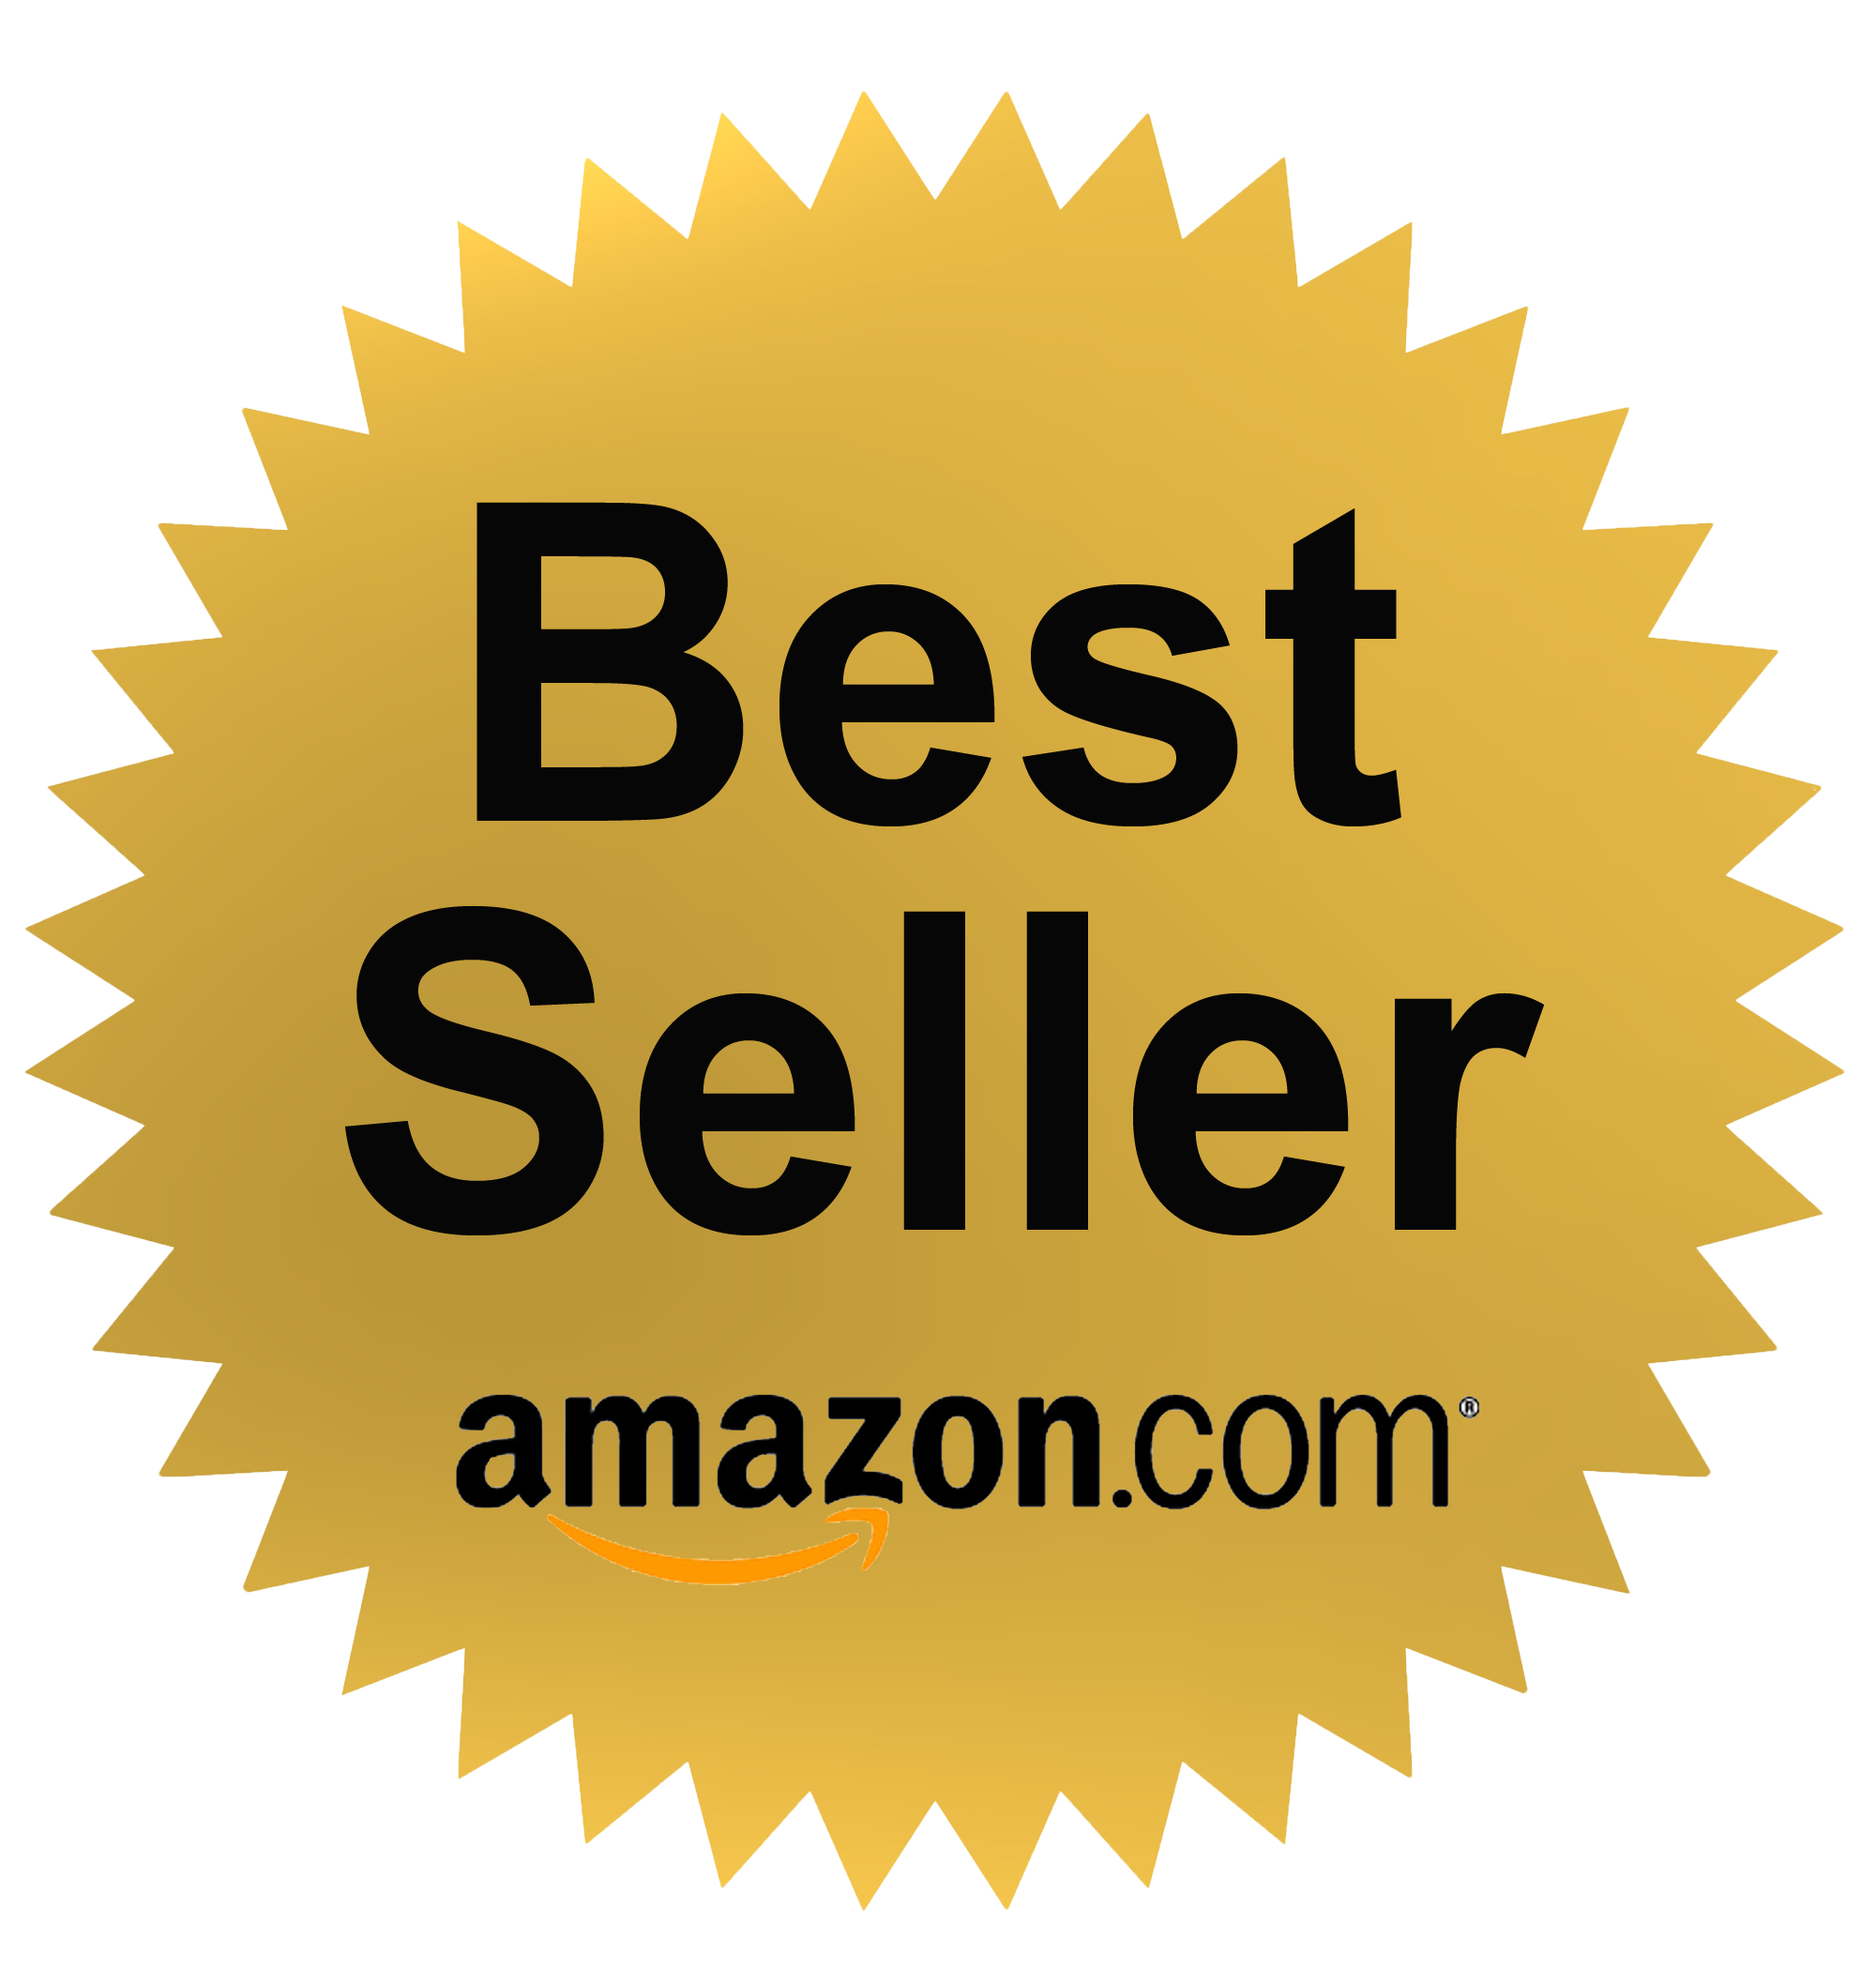 Understanding The Amazon Best Seller Rankings